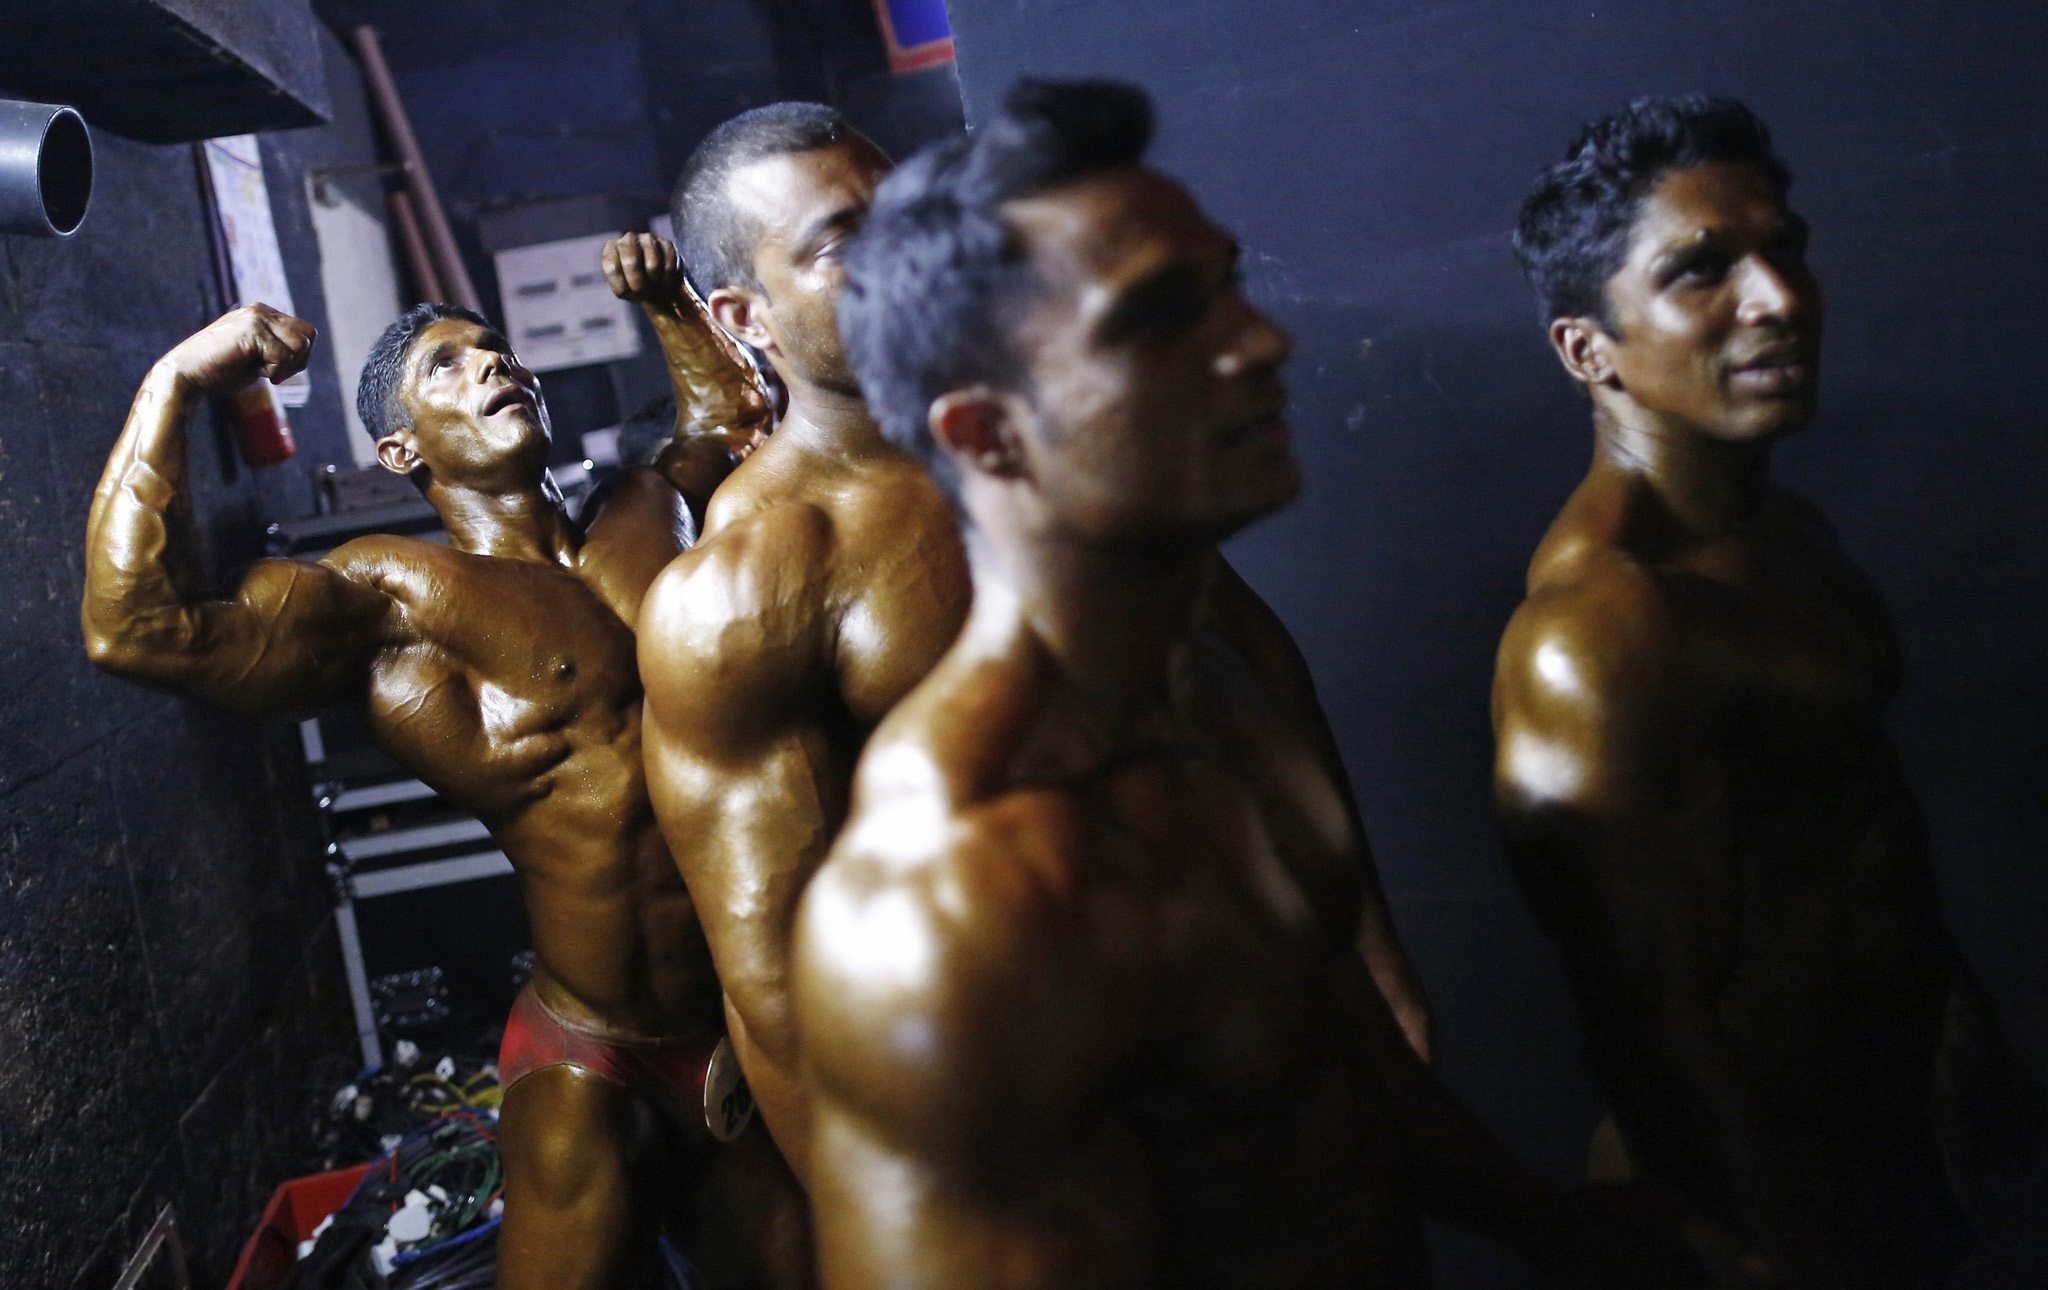 Competitors wait to get on the stage during a bodybuilding competition in Mumbai...Competitors wait to get on the stage during a bodybuilding competition in Mumbai November 27, 2013. Around 30 bodybuilders from all parts of India participated in the competition.